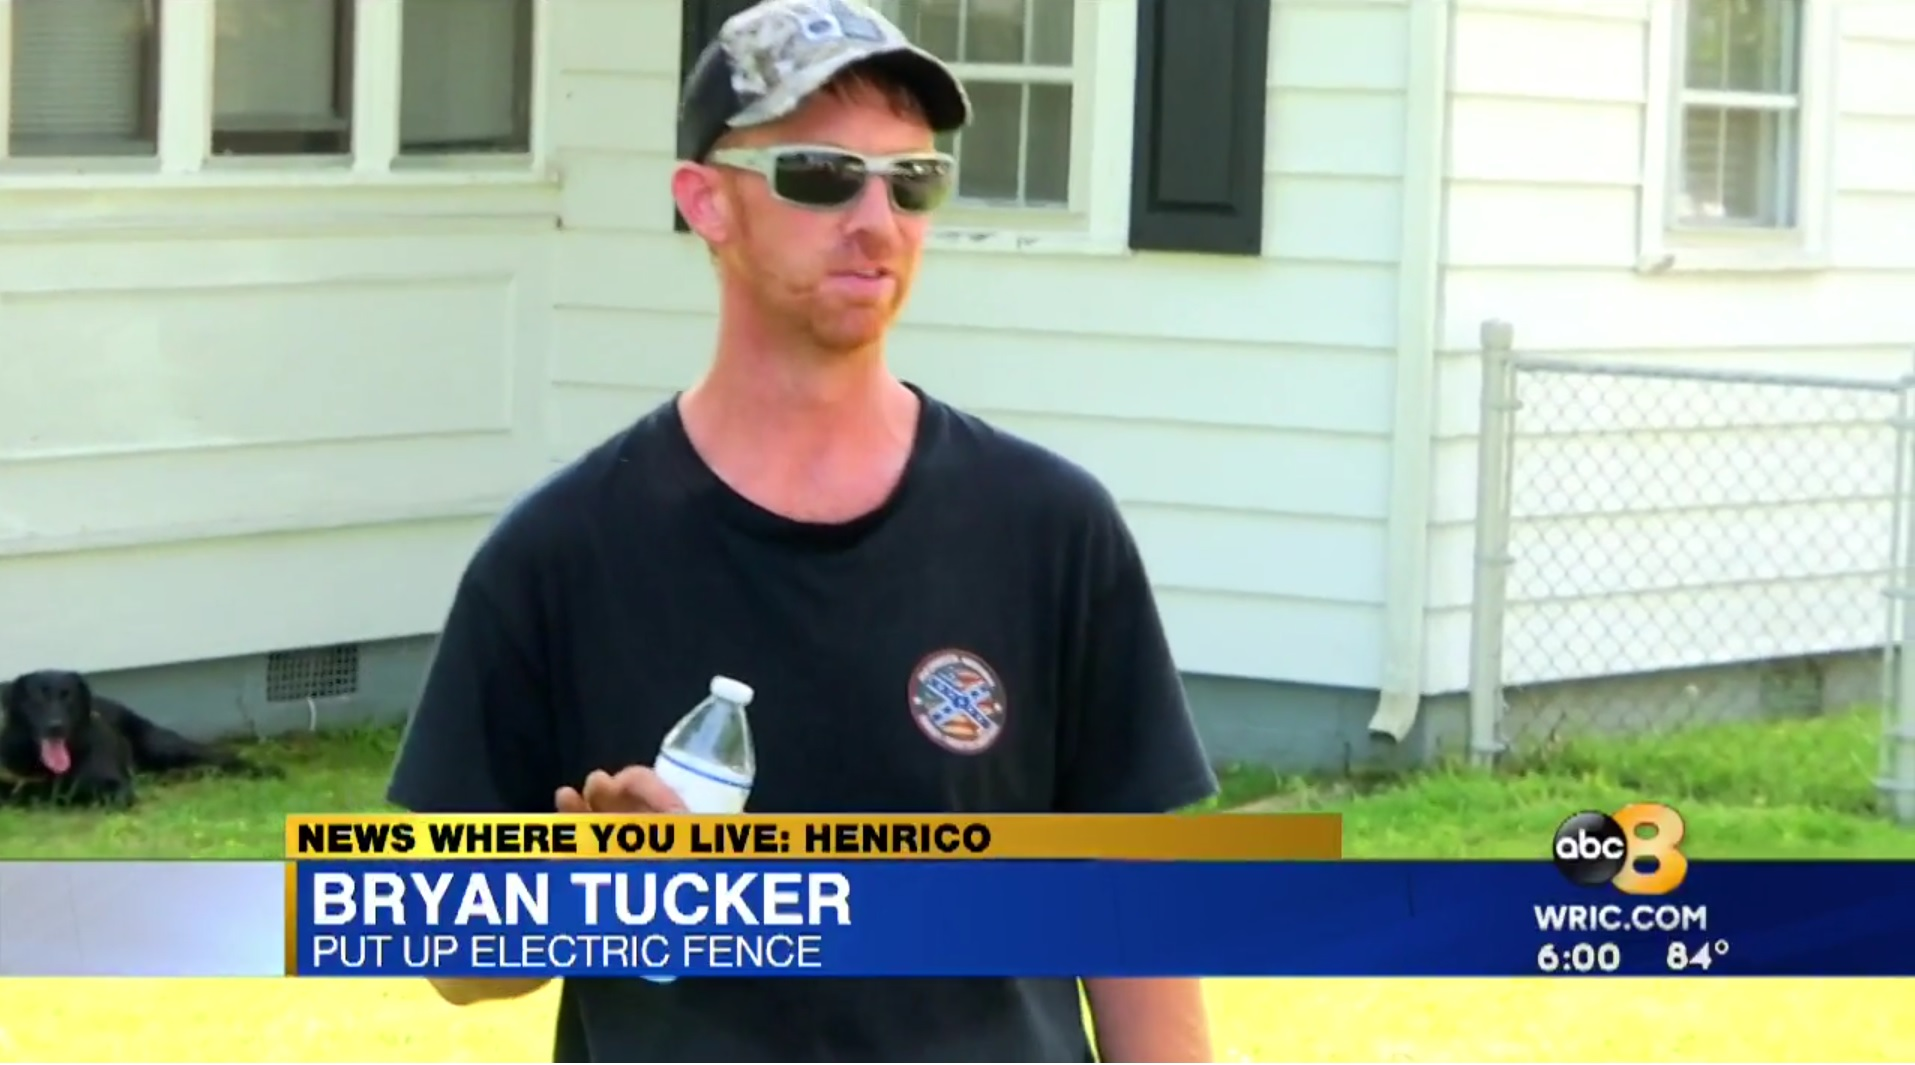 Bryan Tucker: Put Up Electric Fence